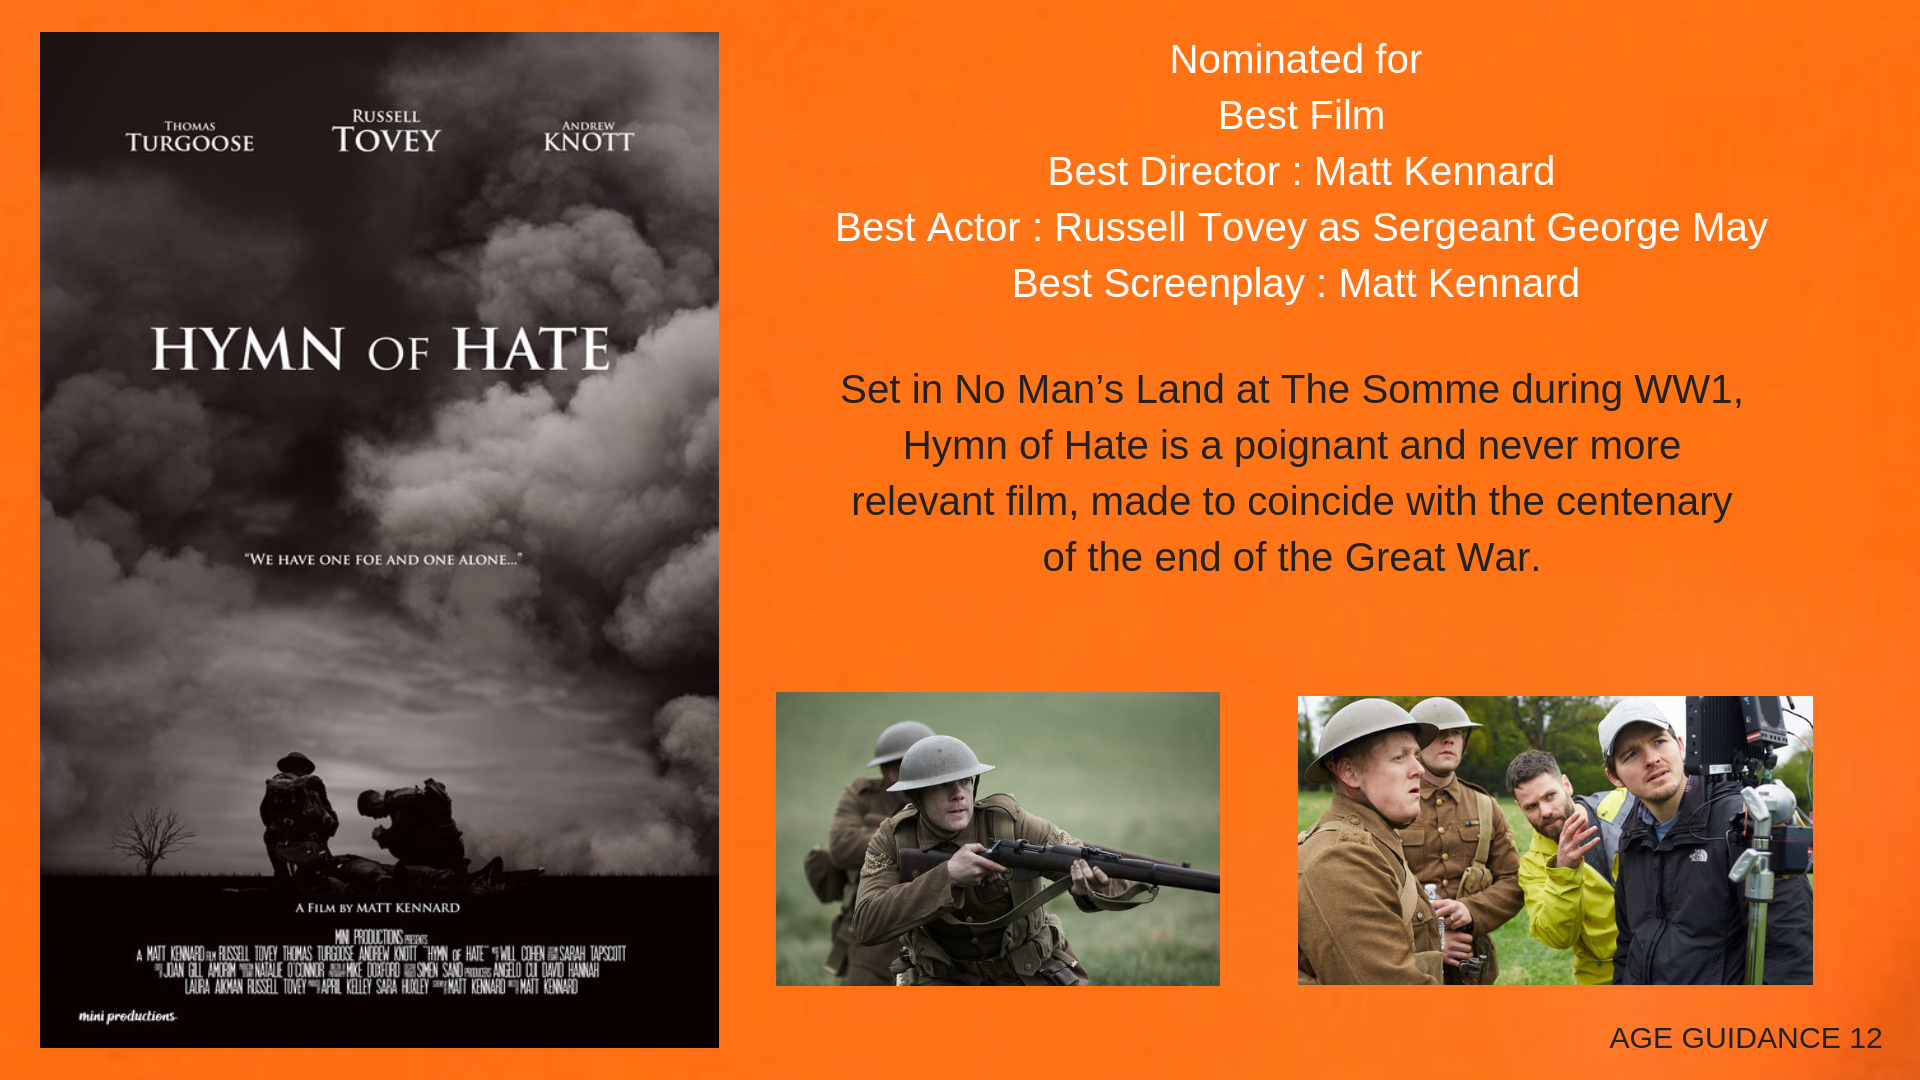 Set in No Man's Land at The Somme during WW1, Hymn of Hate is a poignant and never more relevant film, made to coincide with the centenary of the end of the Great War.